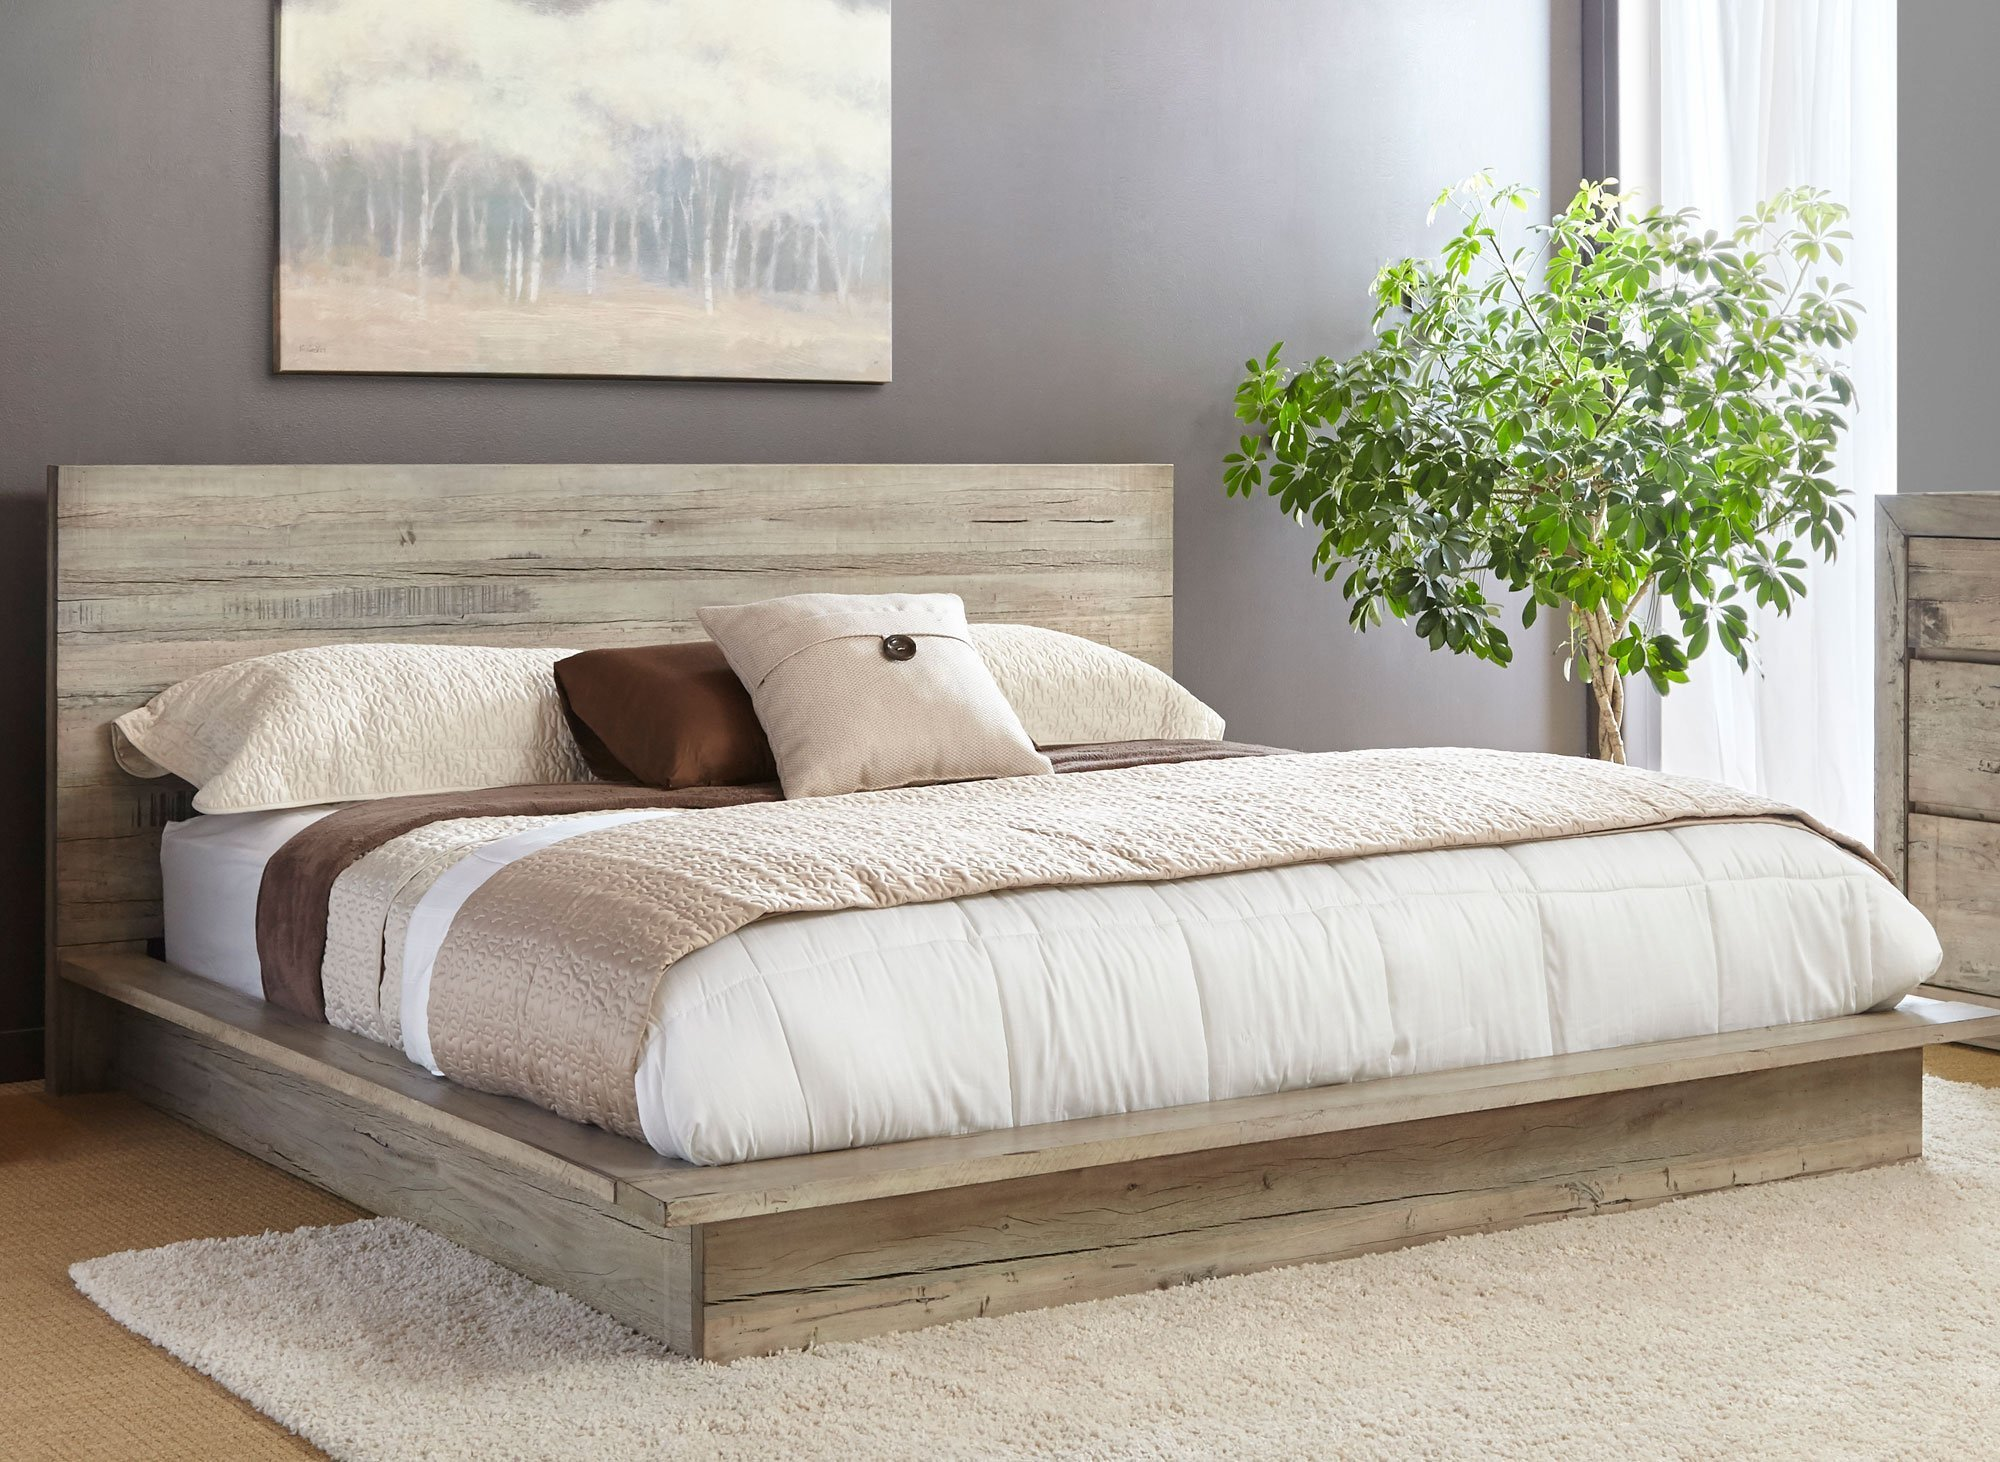 Best White Washed Modern Rustic 6 Piece King Bedroom Set With Pictures